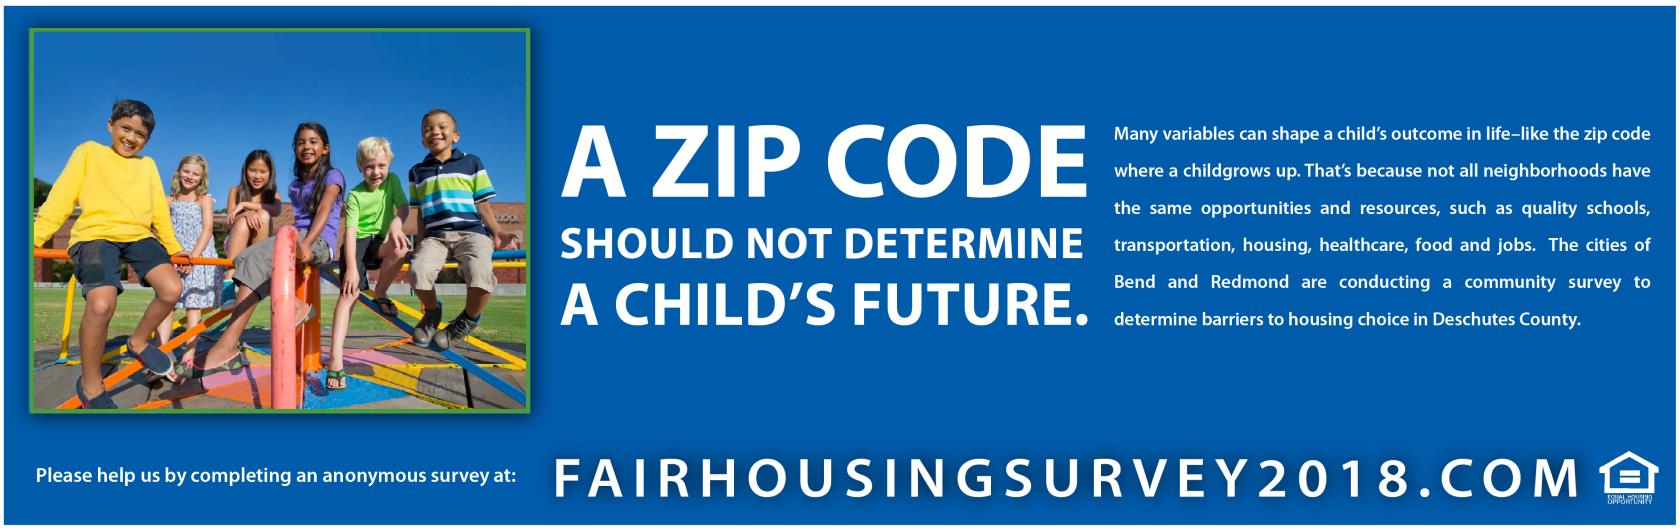 fair housing ad page header